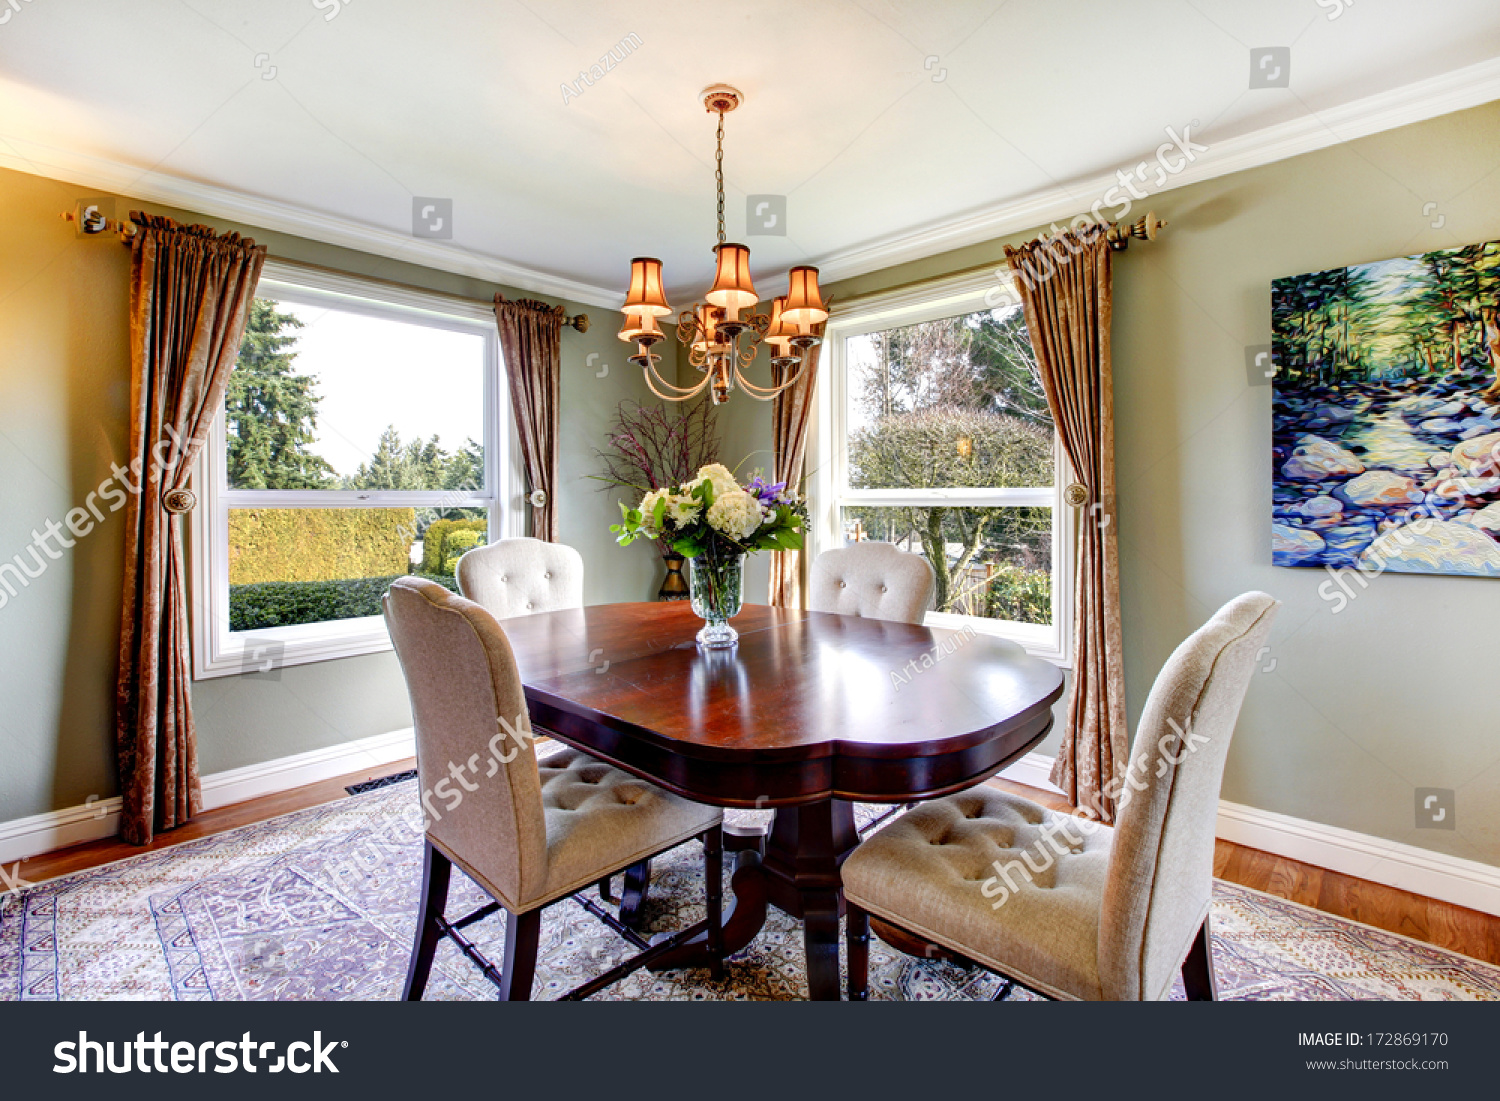 Olive tones dining room oldfashioned dining stock photo for Old fashioned dining room tables